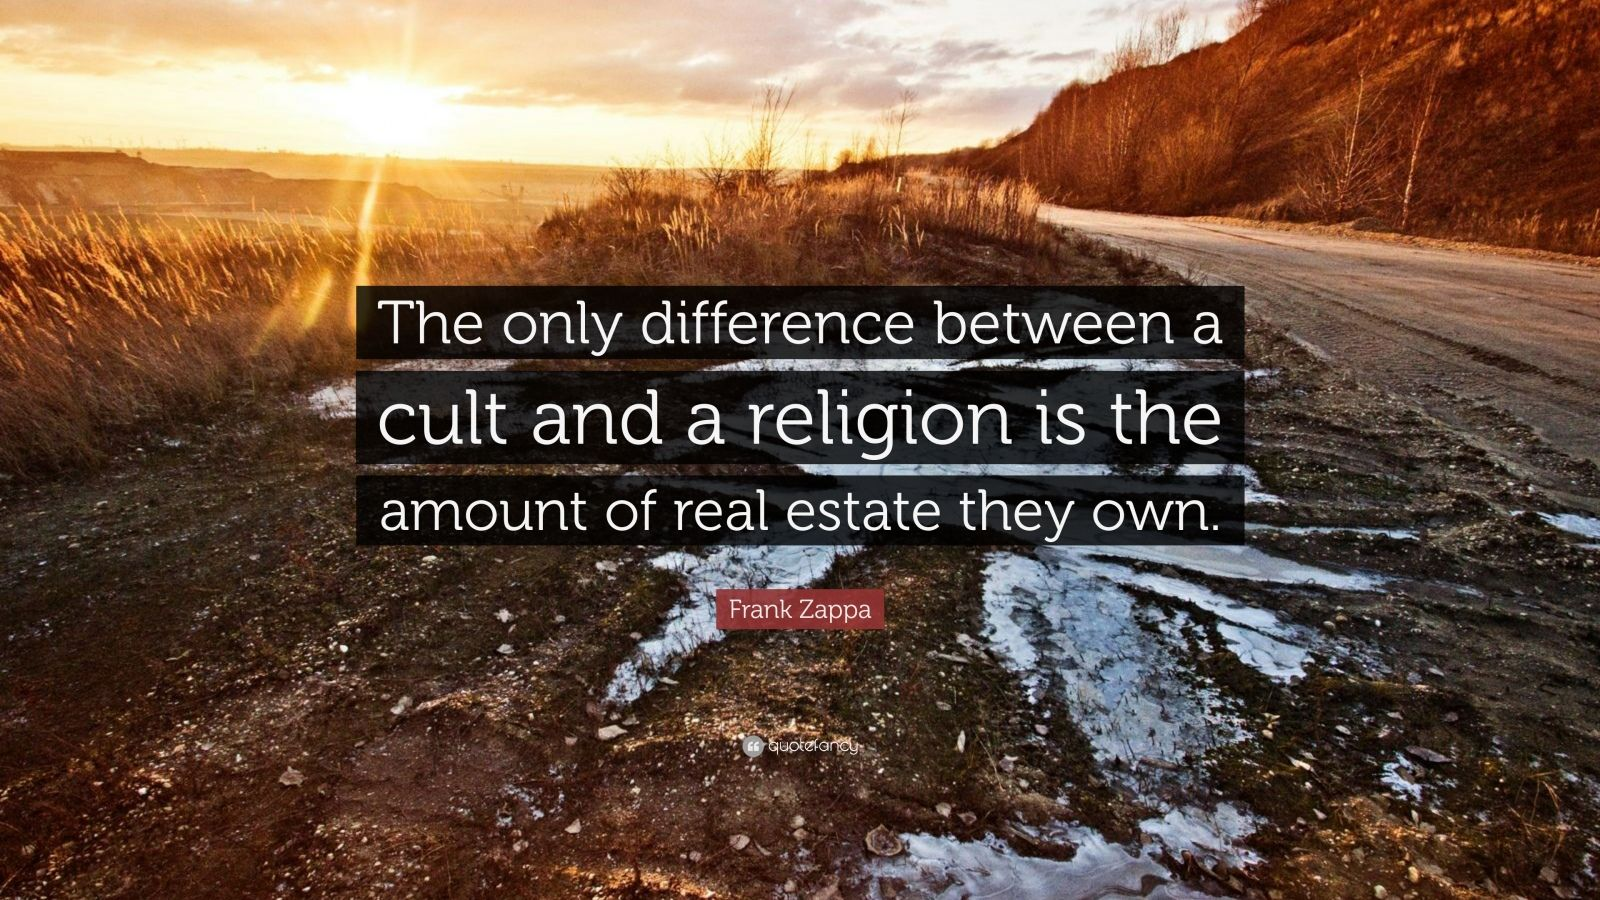 """Frank Zappa Quote: """"The only difference between a cult and a religion is the amount of real estate they own."""""""